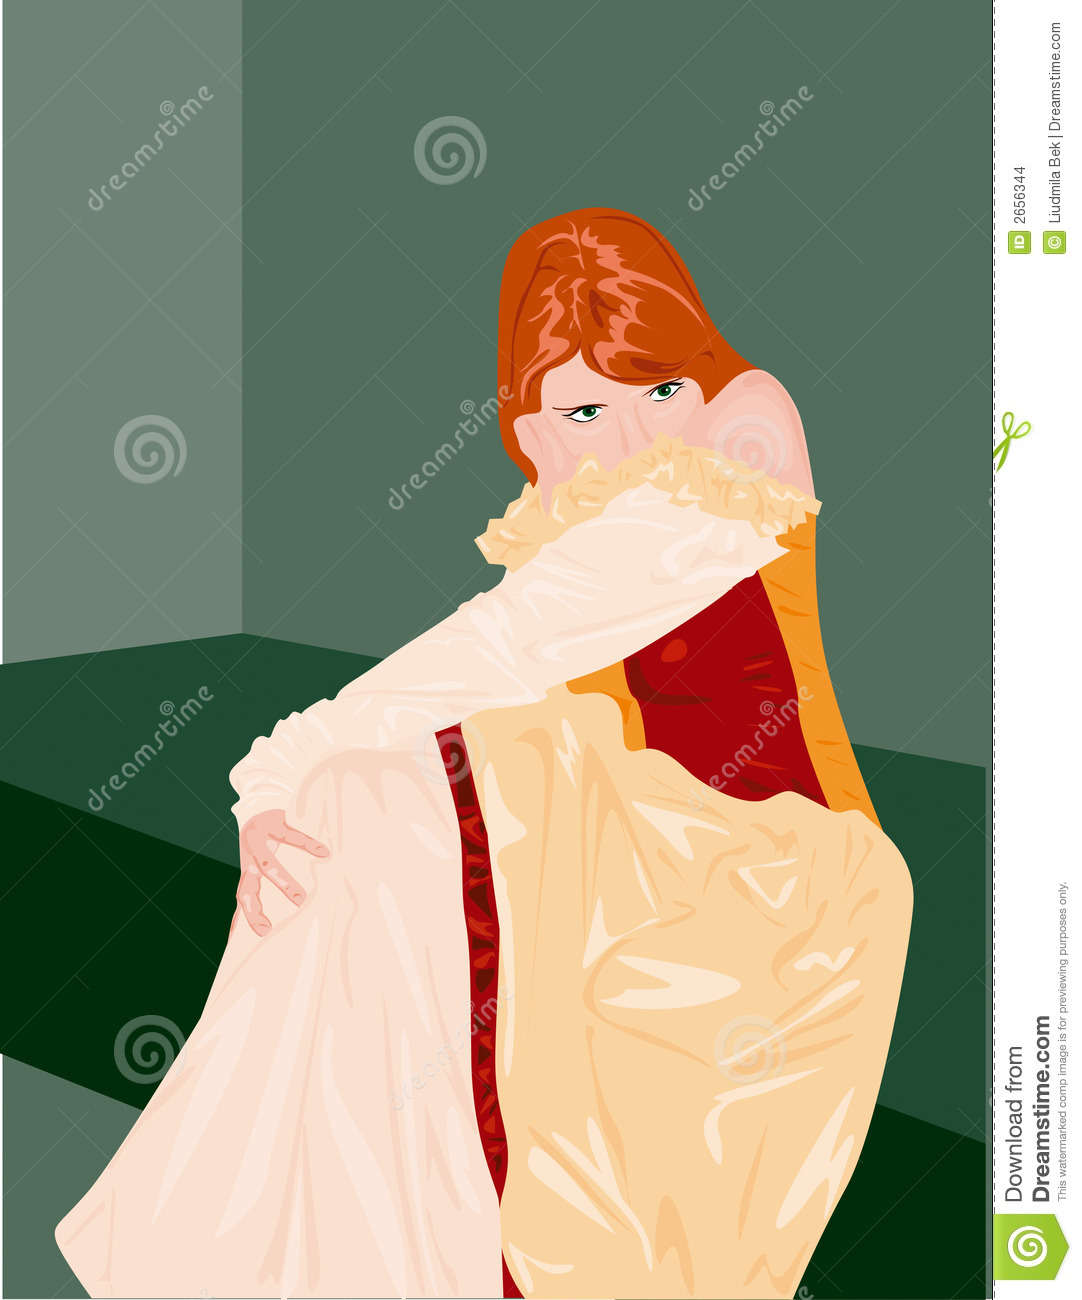 Cartoon Illustration Of Shy Princess With Red Hair Sat In Room